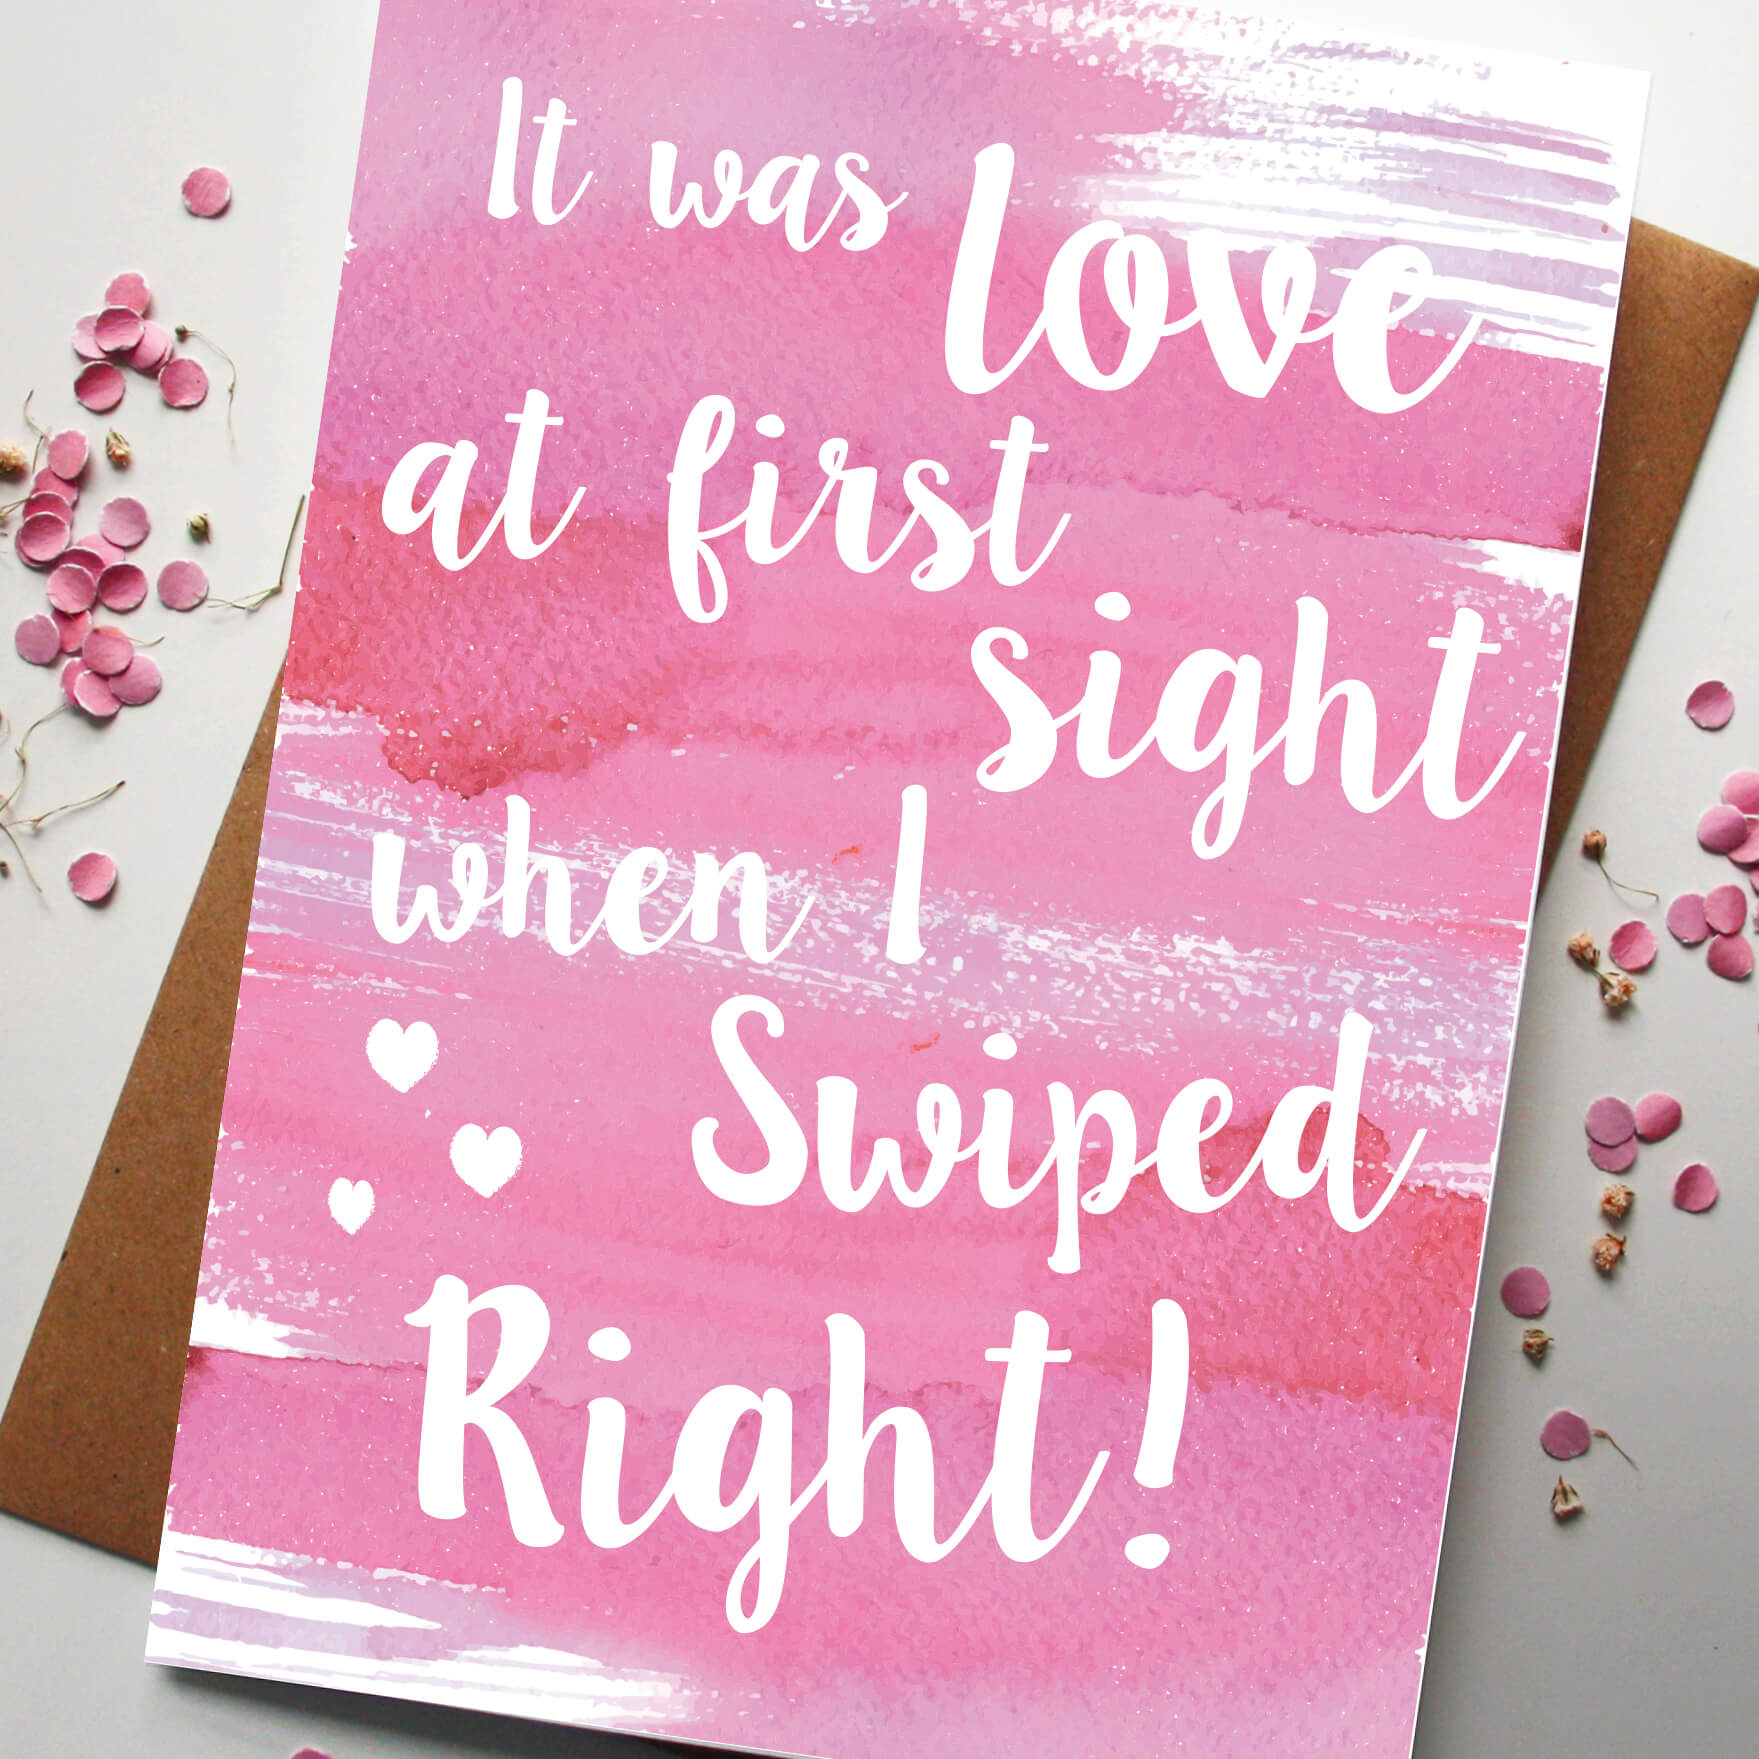 Love at first swipe when I swiped right Valentines day card by Rodo Creative